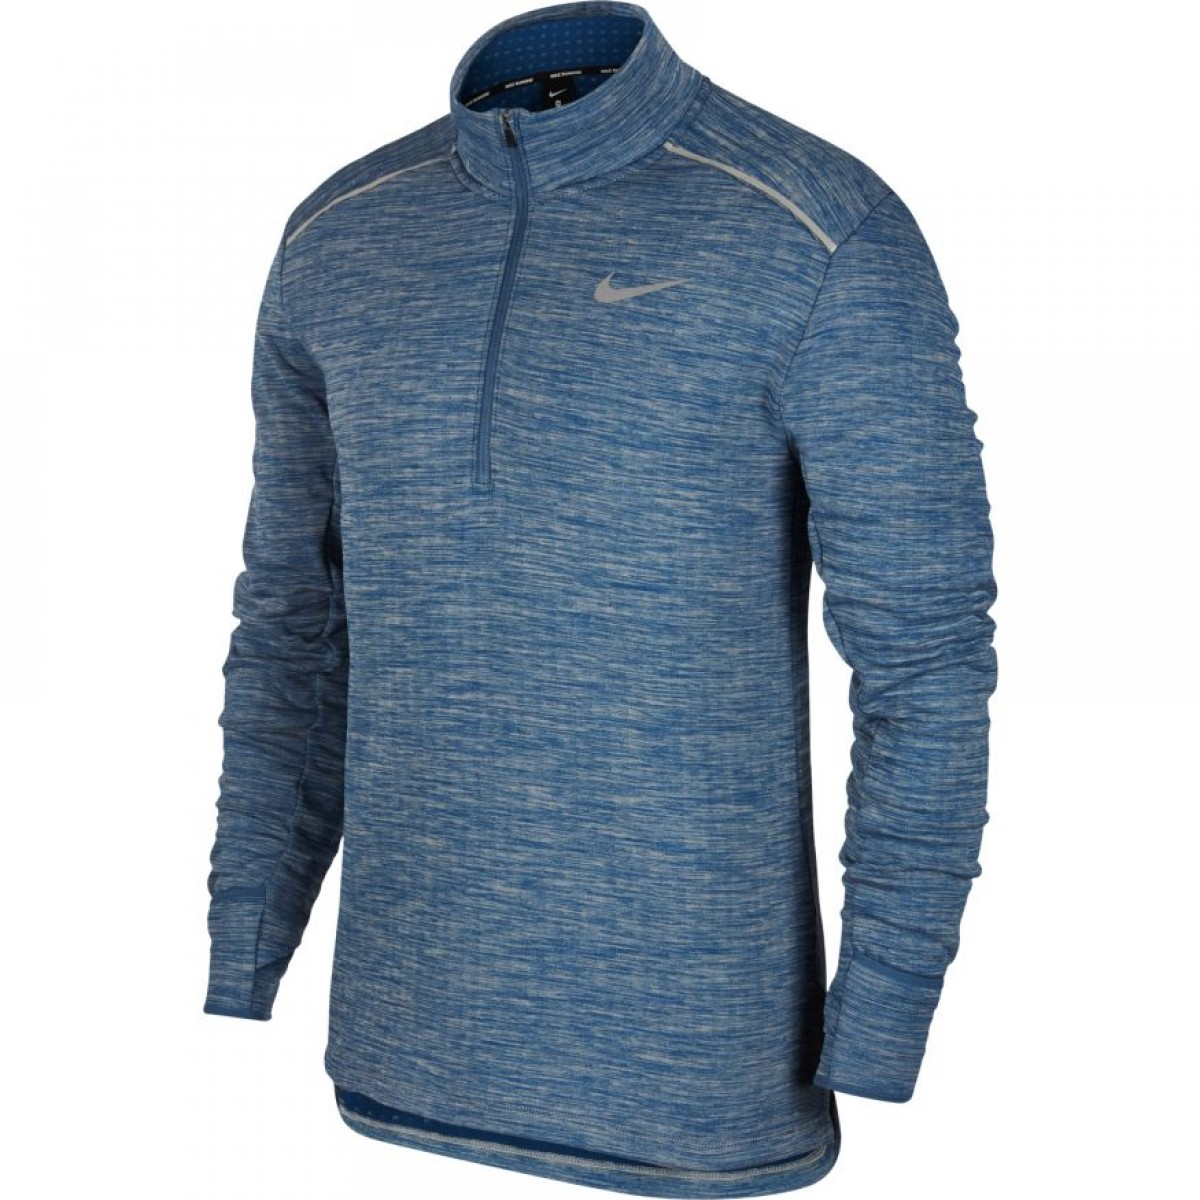 VESTE NIKE RUNNING THERMA SPHERE ELEMENT 3.0